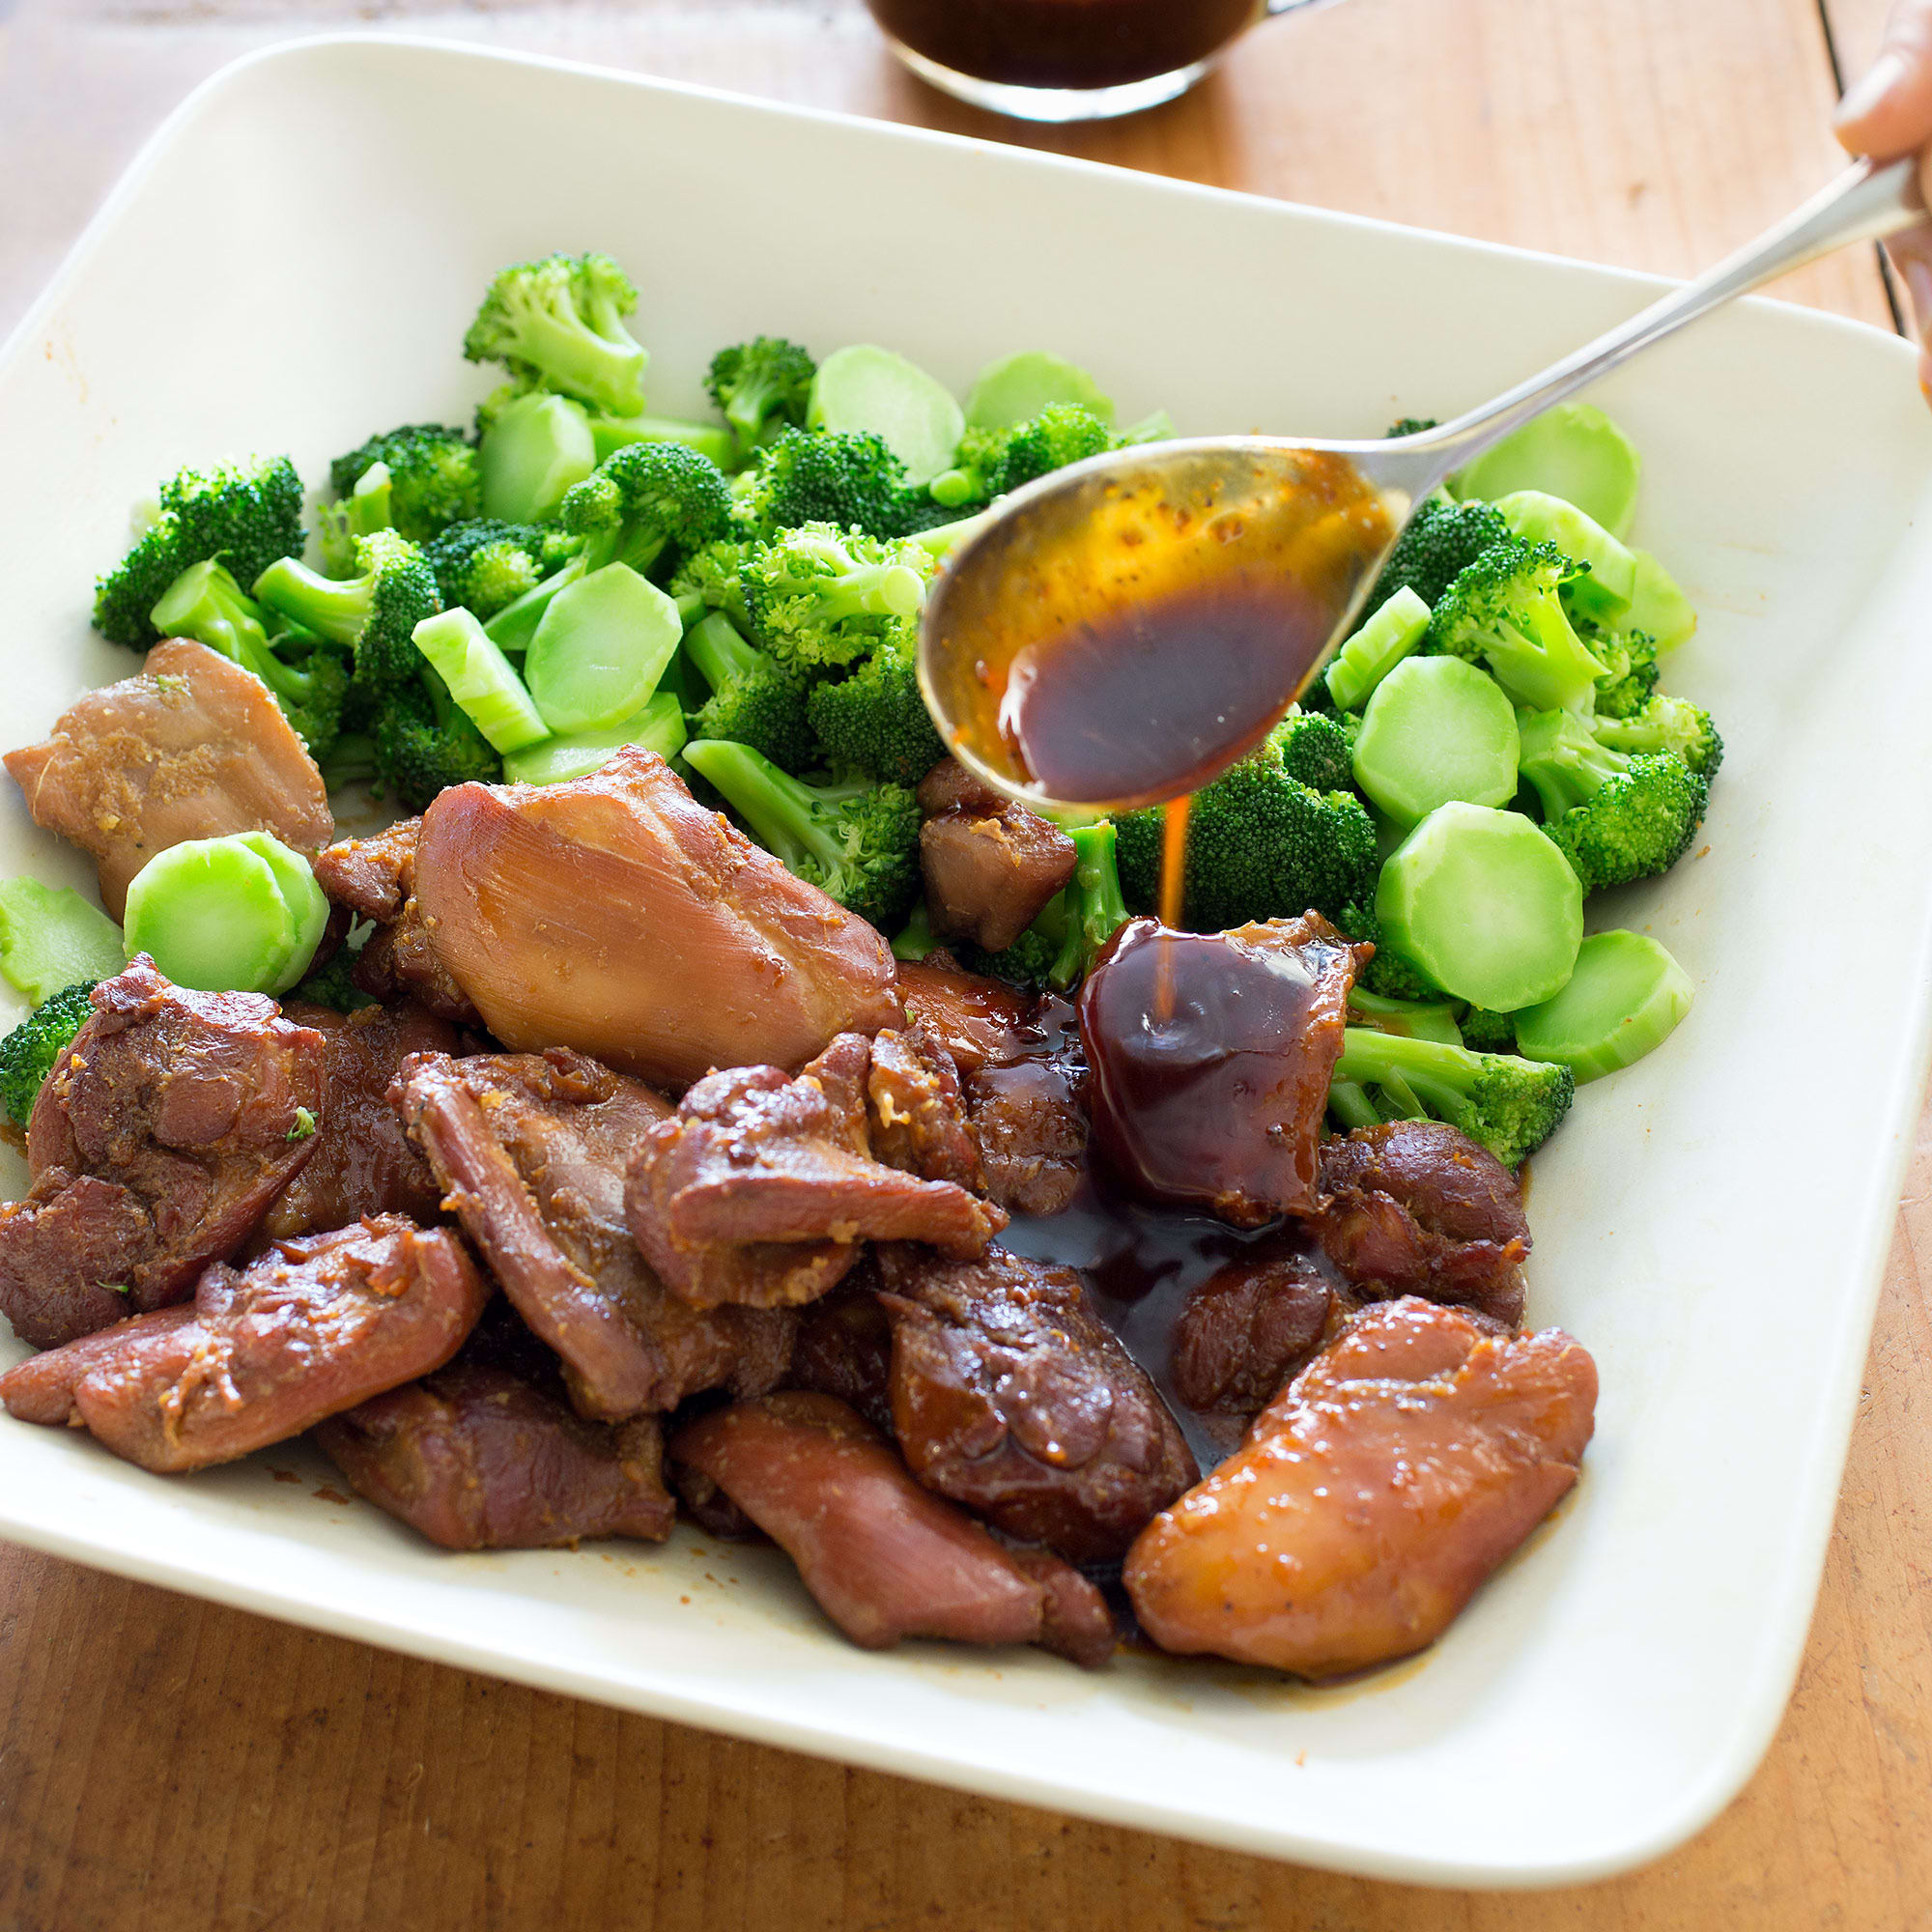 Kitchen Styles Quiz: Vietnamese-Style Caramel Chicken With Broccoli